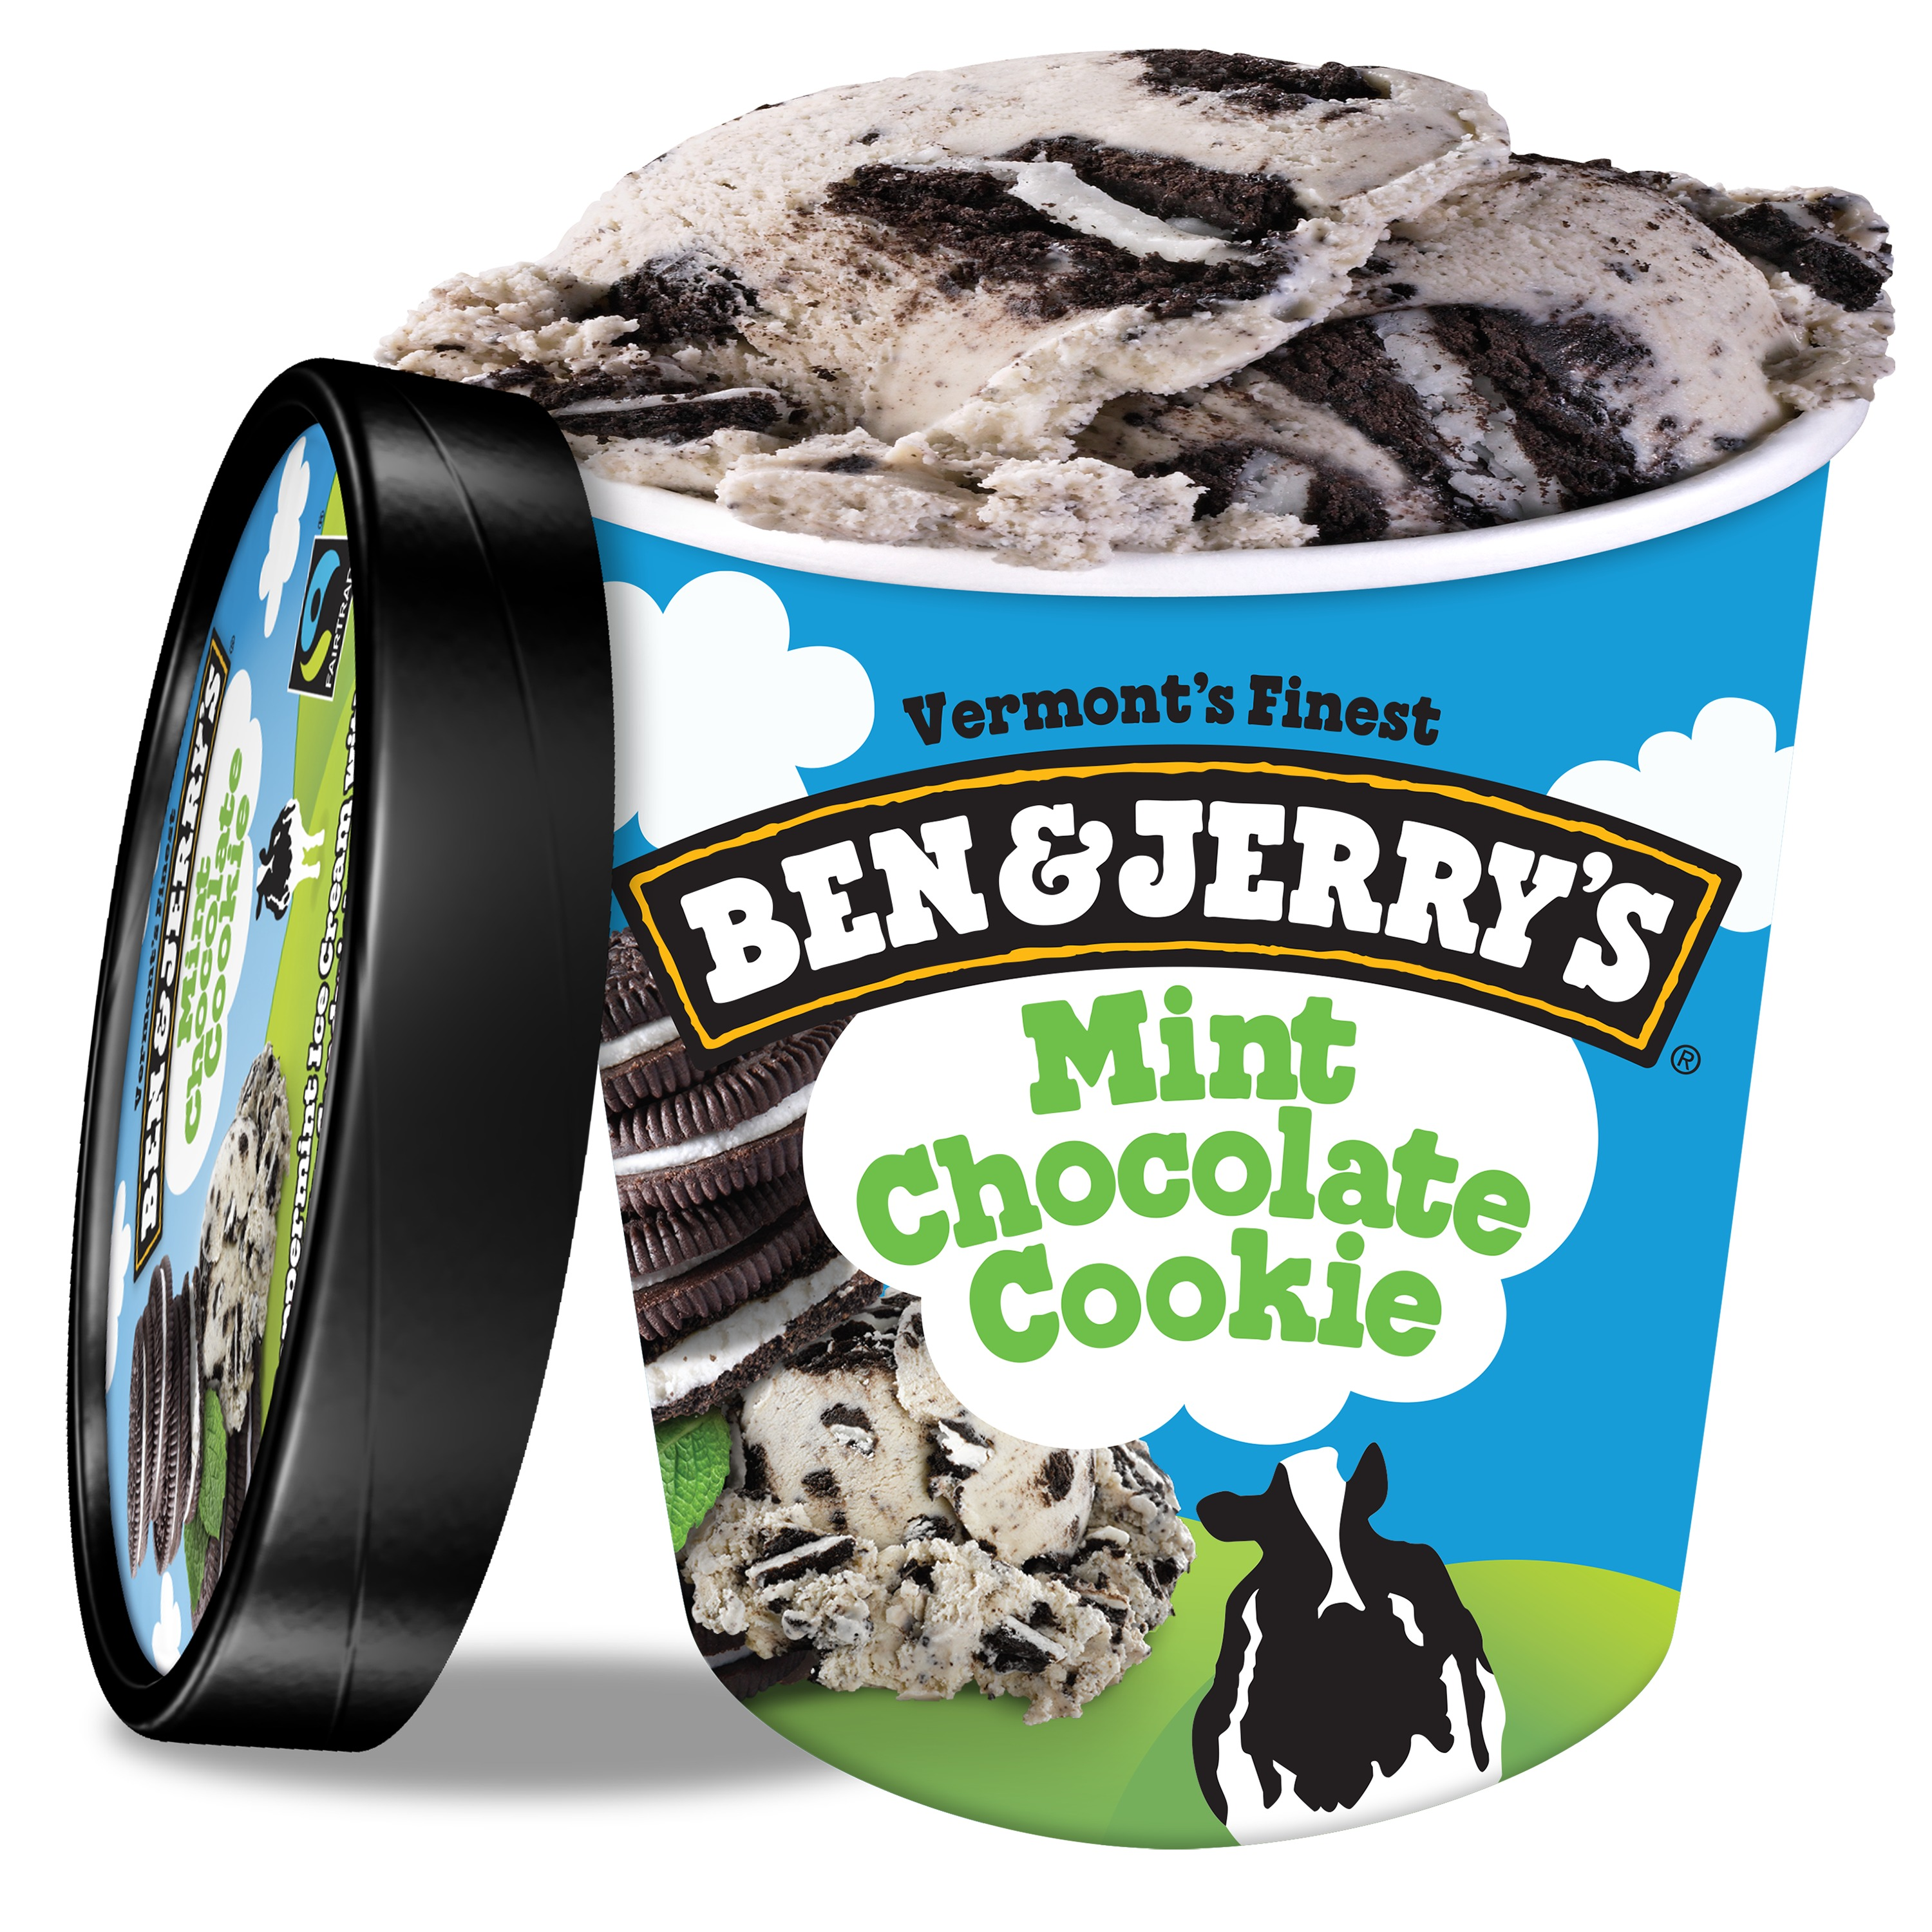 Ben & Jerry's Mint Chocolate Cookie Ice Cream, 16 oz